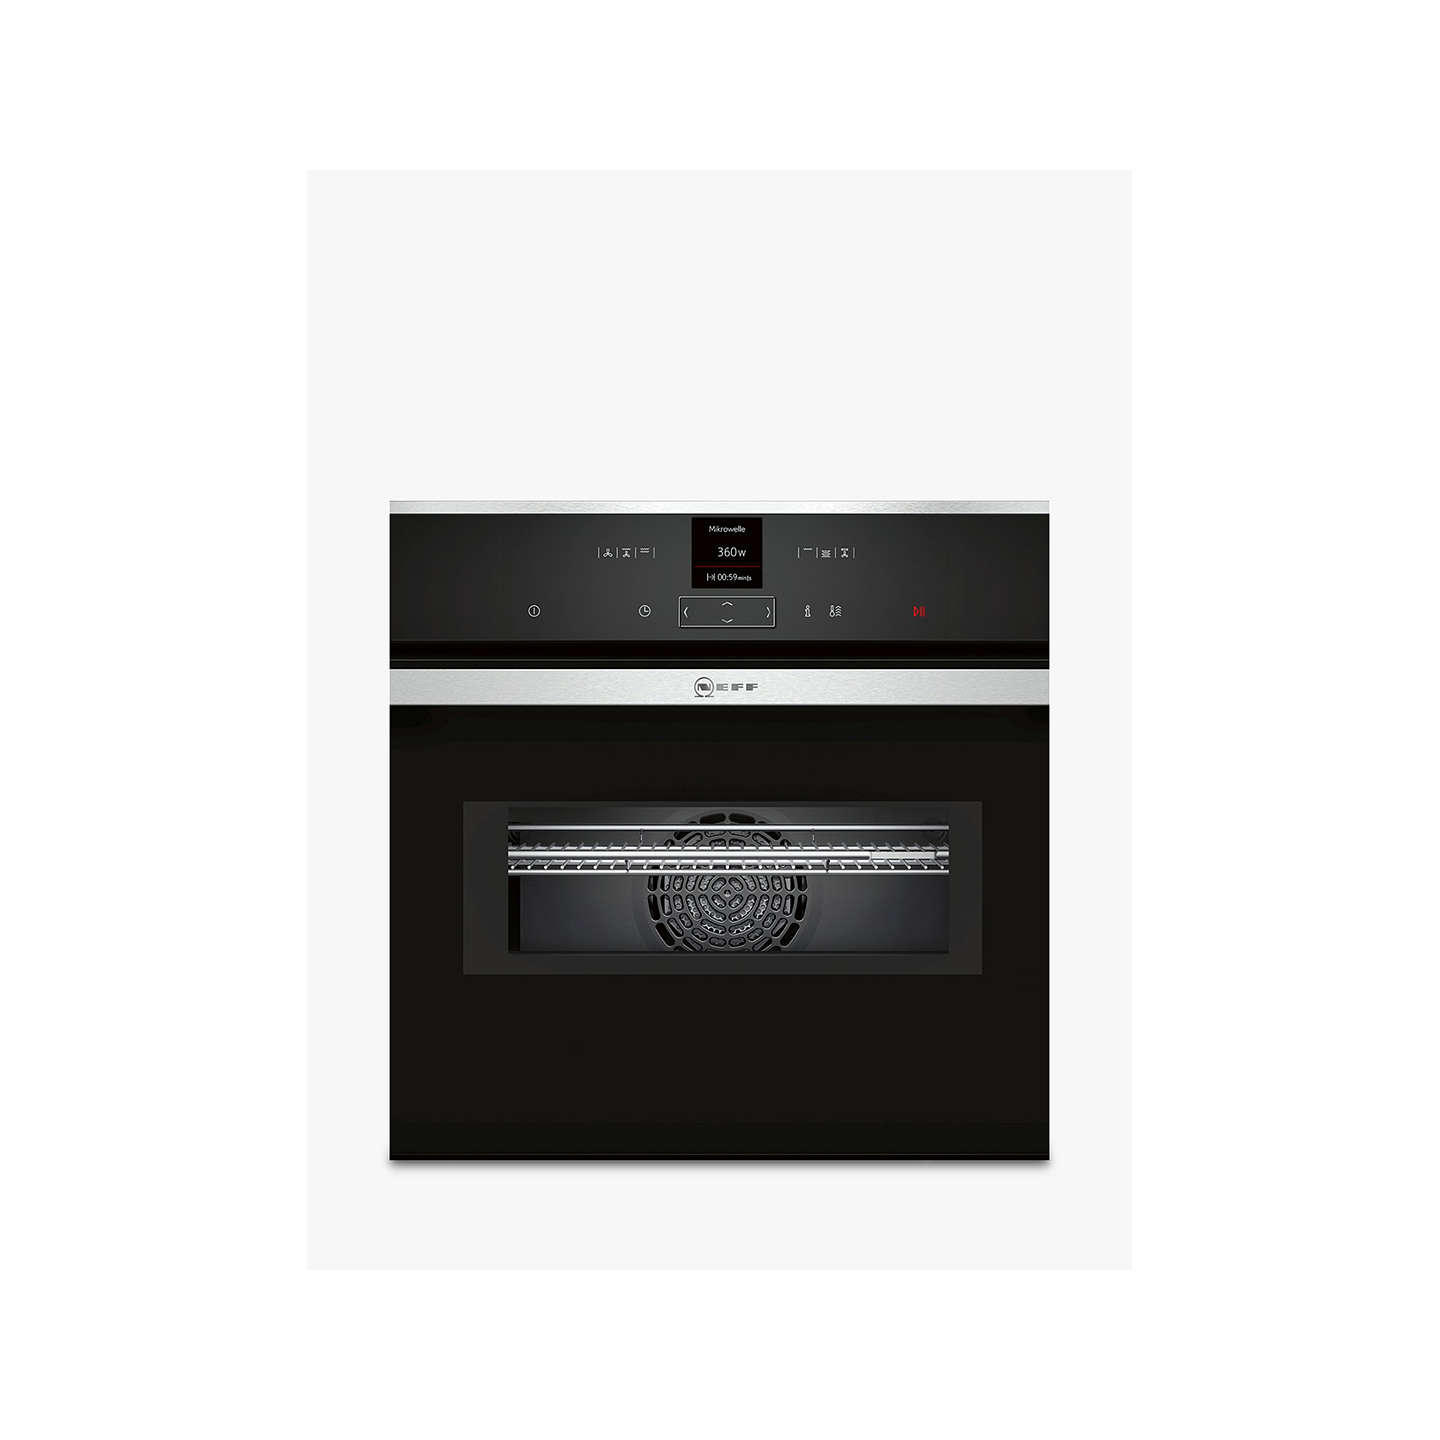 Neff C17MR02N0B Built in bination Microwave Oven Stainless Steel